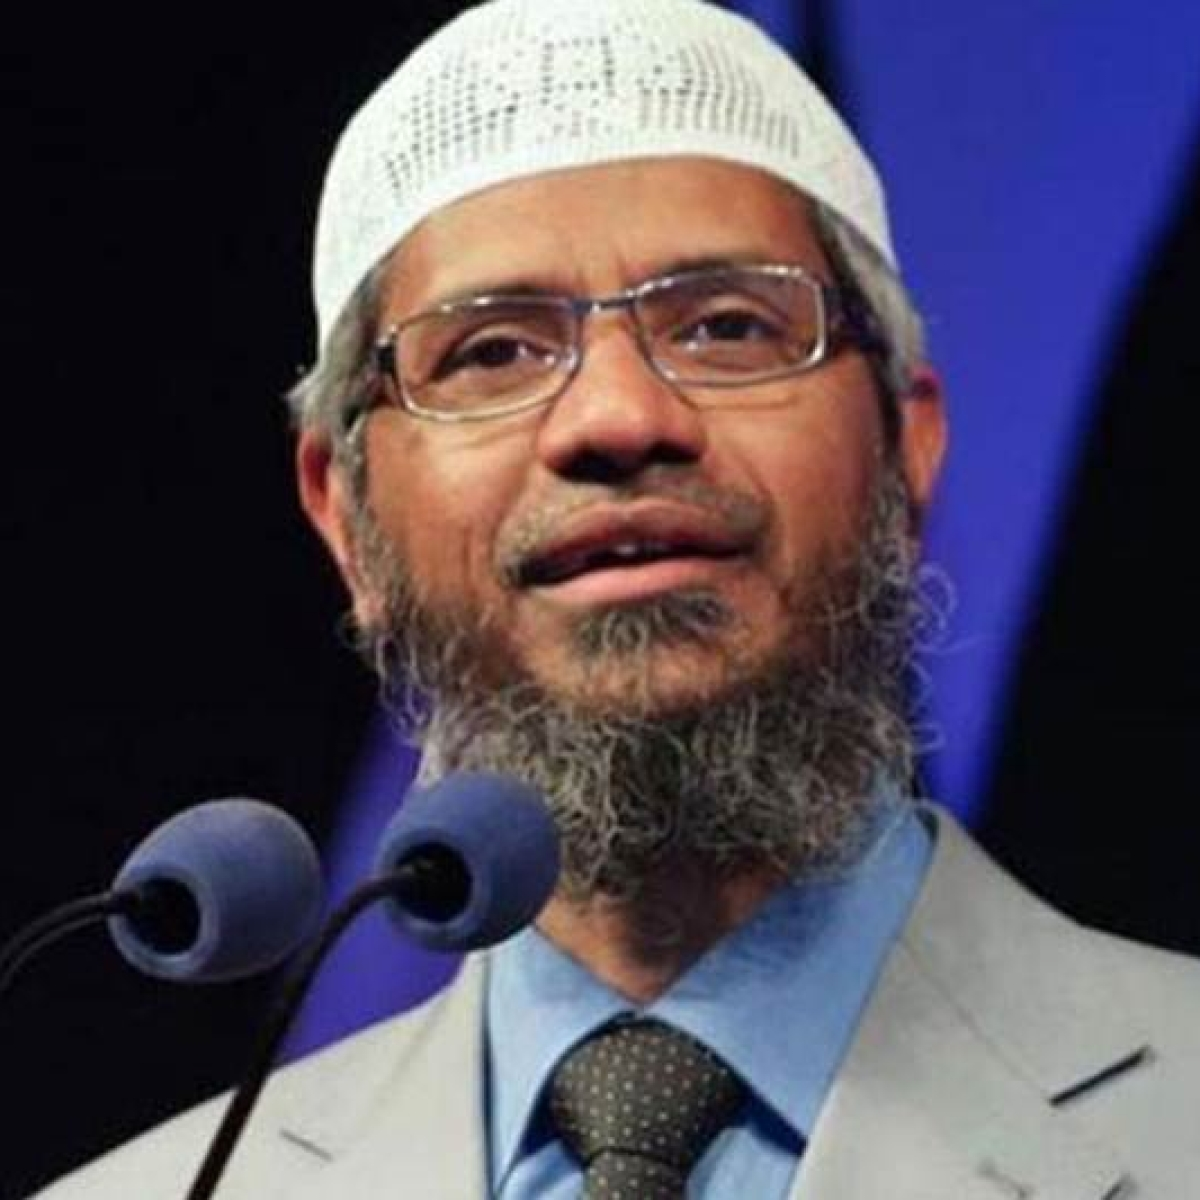 Most arrested ISIS sympathisers inspired by Zakir Naik, says NIA